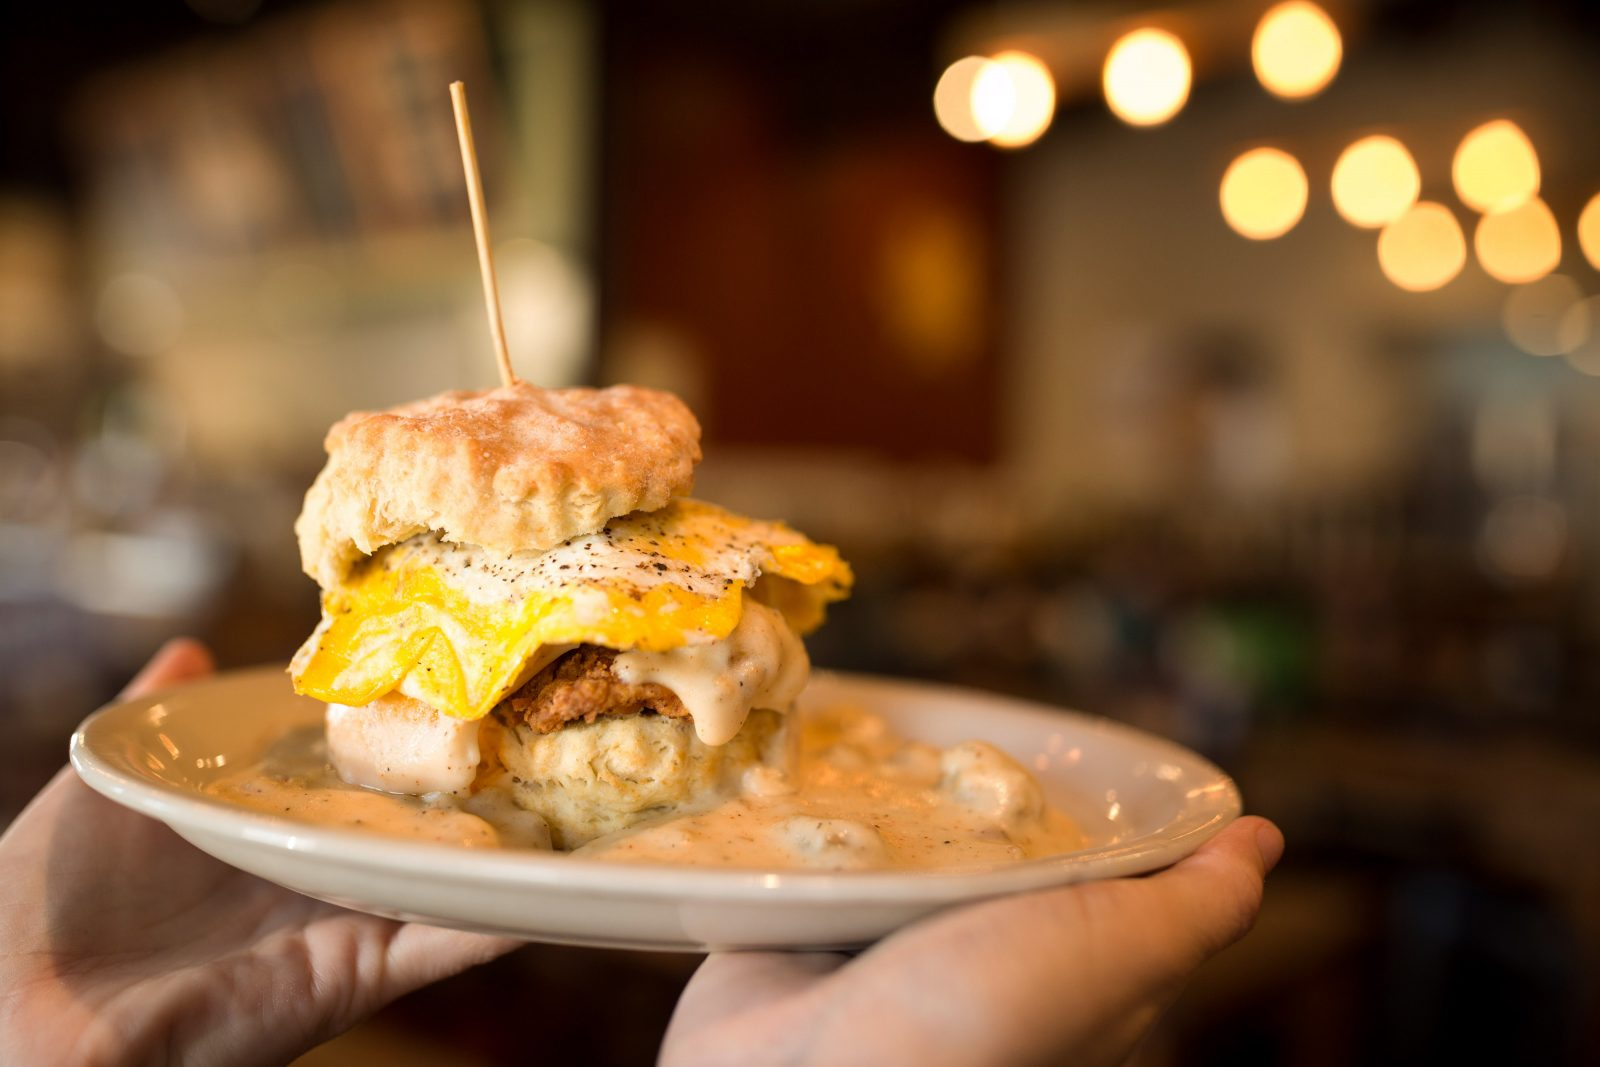 The Five and Dime from Maple Street Biscuit Co in Brentwood, TN